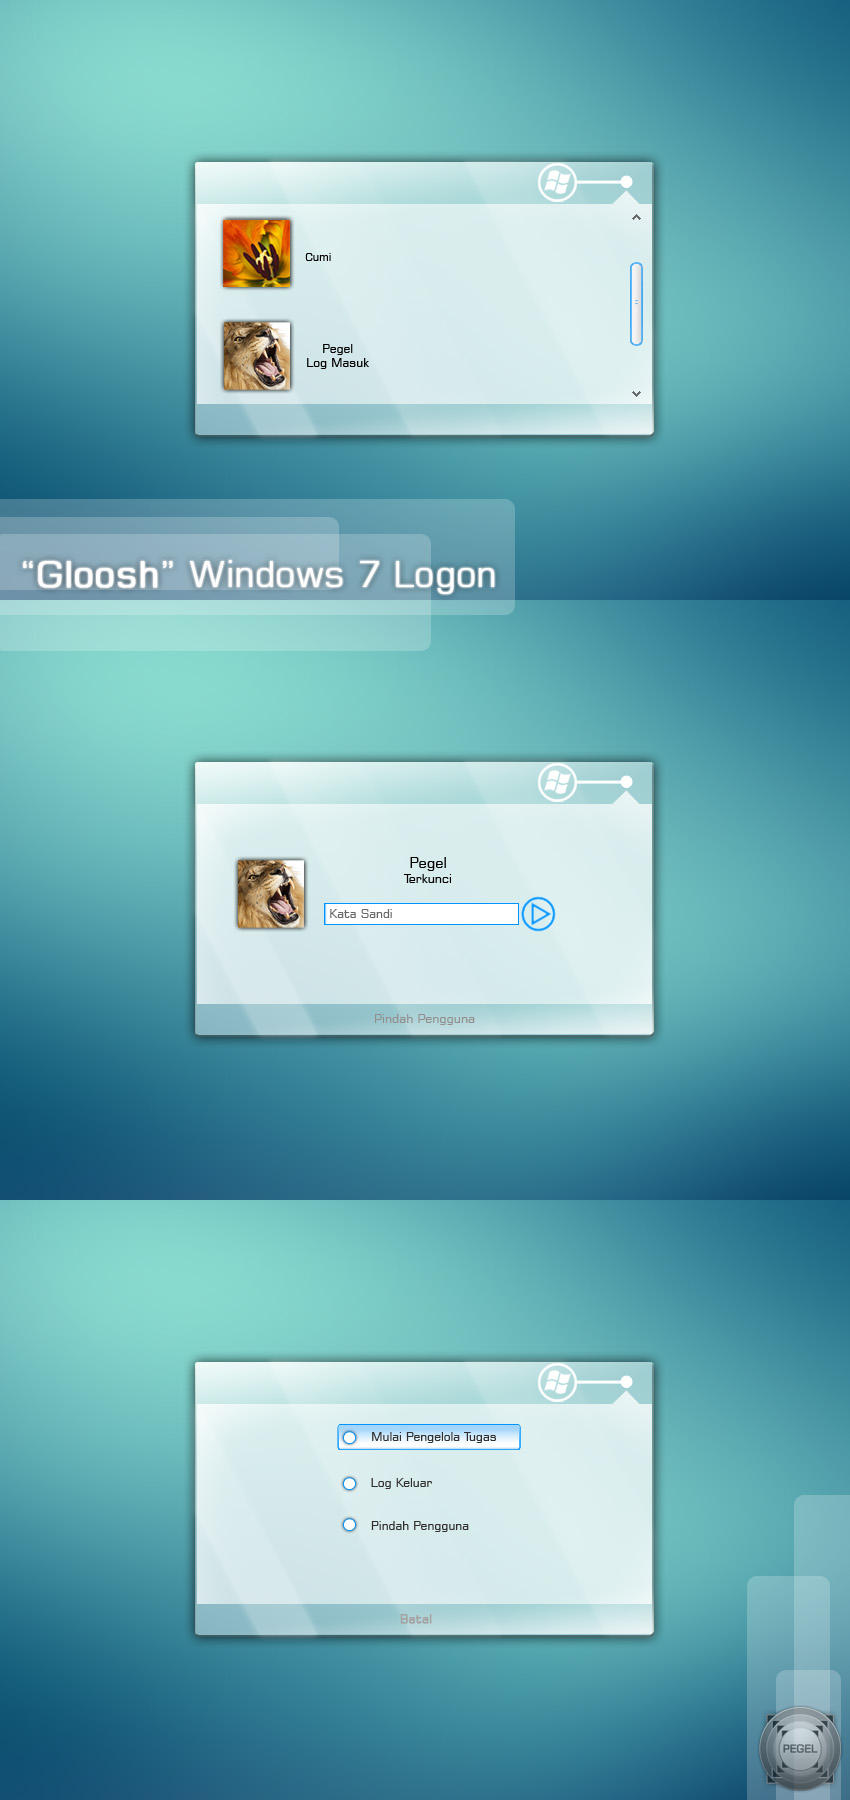 """Gloosh"" Windows 7 Logon by pegel"